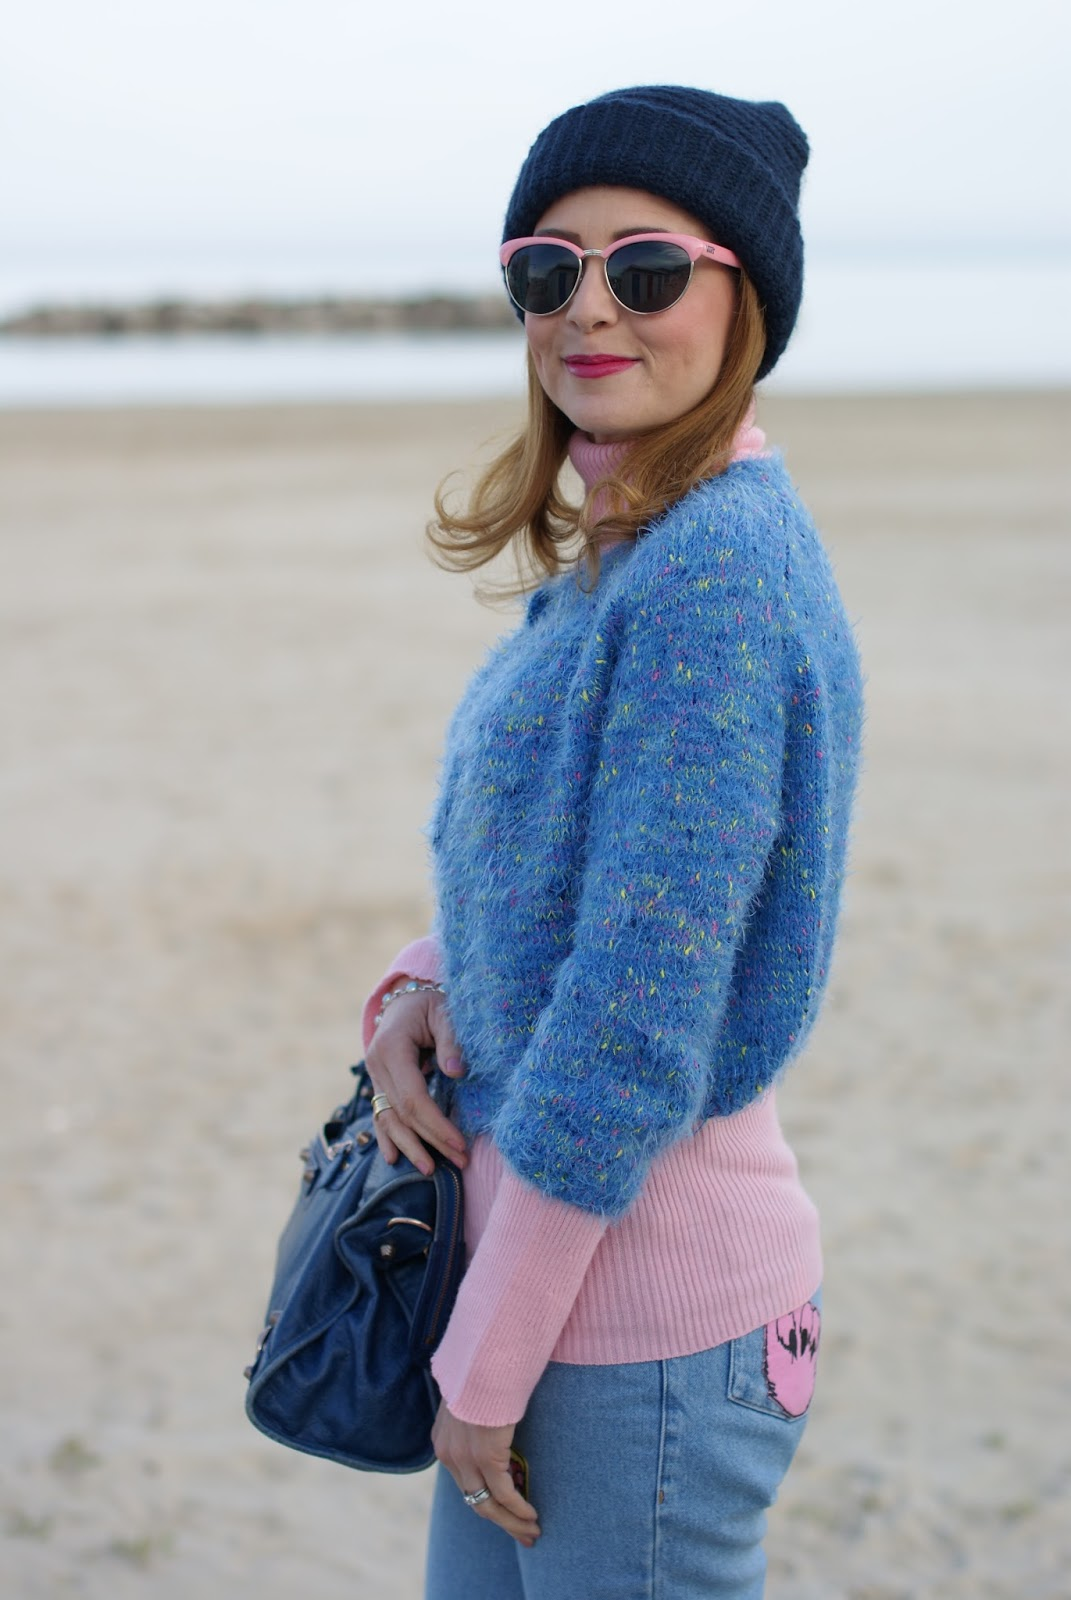 Mom patched jeans, pink Vans sunglasses, Balenciaga bag on Fashion and Cookies fashion blog, fashion blogger style